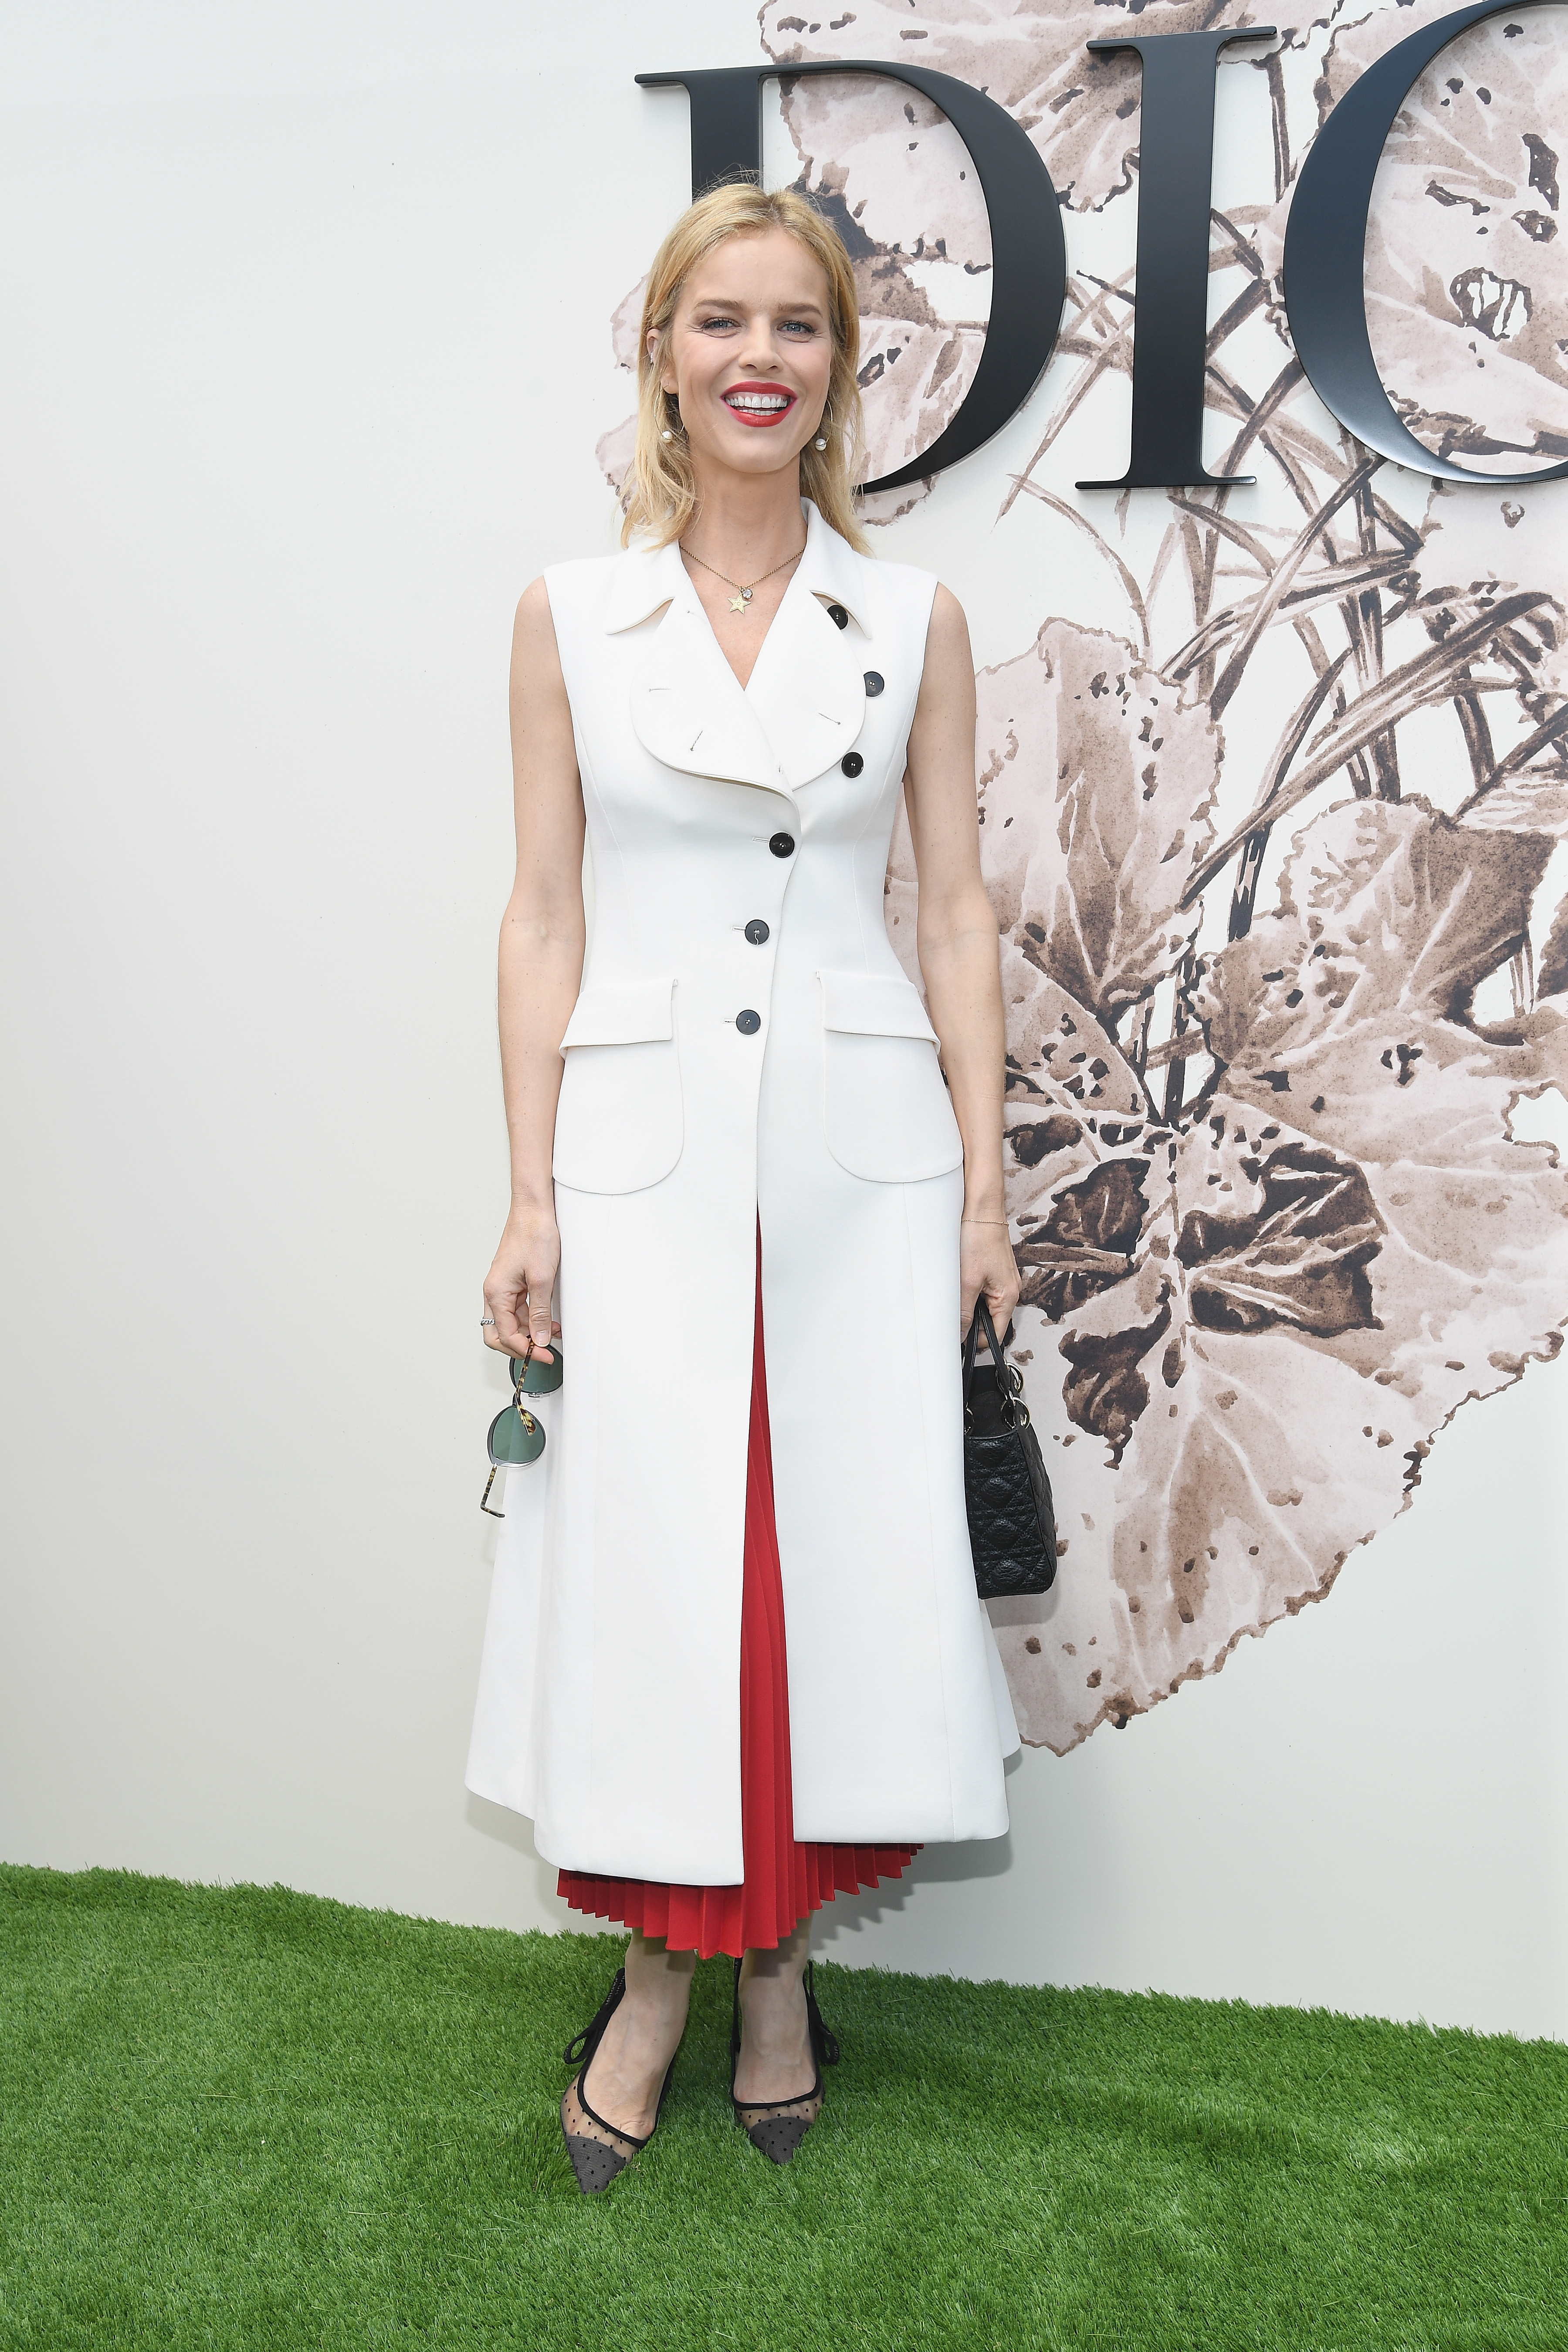 PARIS, FRANCE - JULY 03:  Eva Herzigova attends the Christian Dior Haute Couture Fall/Winter 2017-2018 show as part of Haute Couture Paris Fashion Week on July 3, 2017 in Paris, France.  (Photo by Pascal Le Segretain/Getty Images for Christian Dior) *** Local Caption *** Eva Herzigova